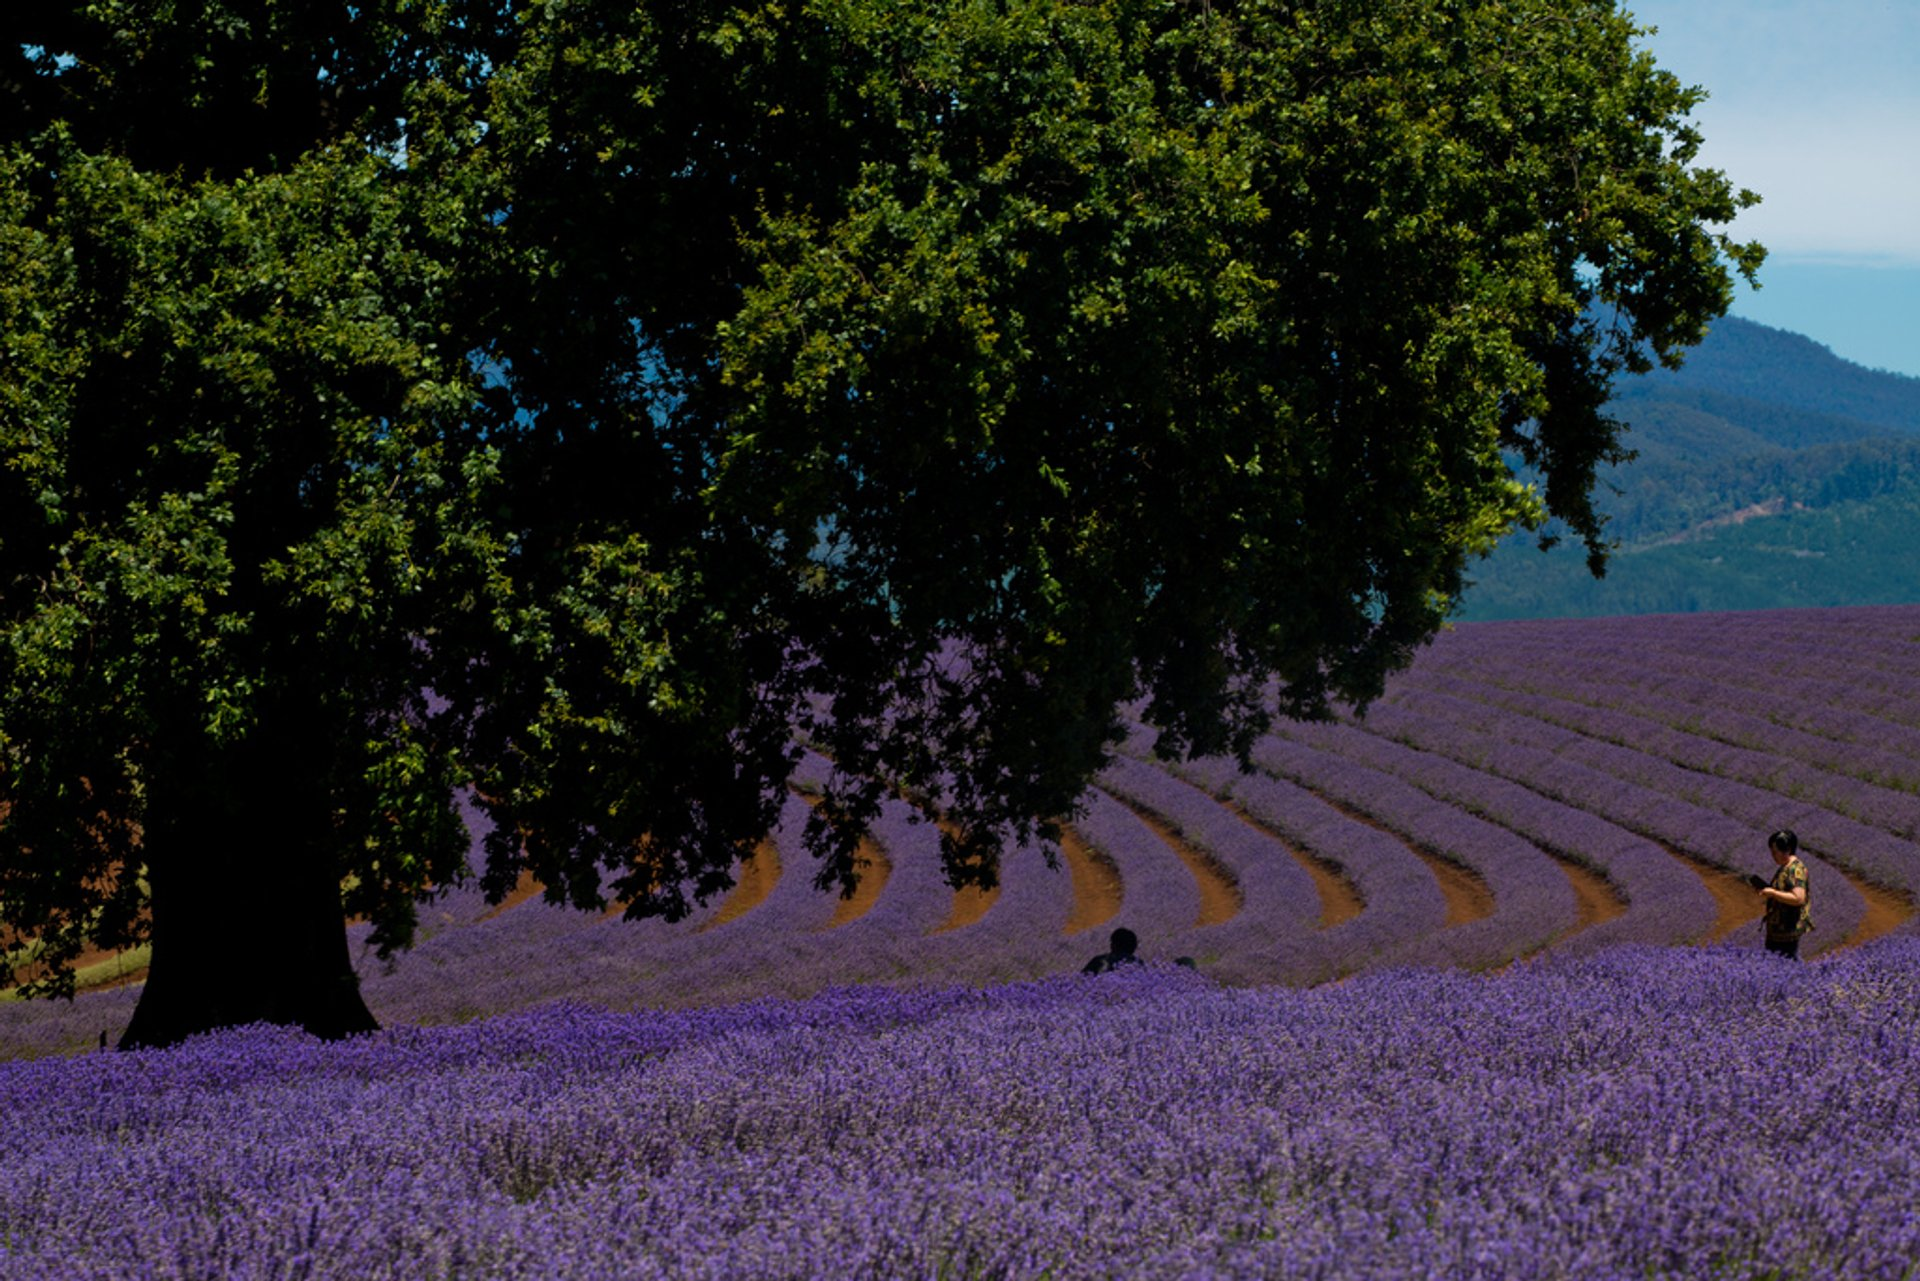 Bridestowe Lavender Farm in northeast Tasmania 2019